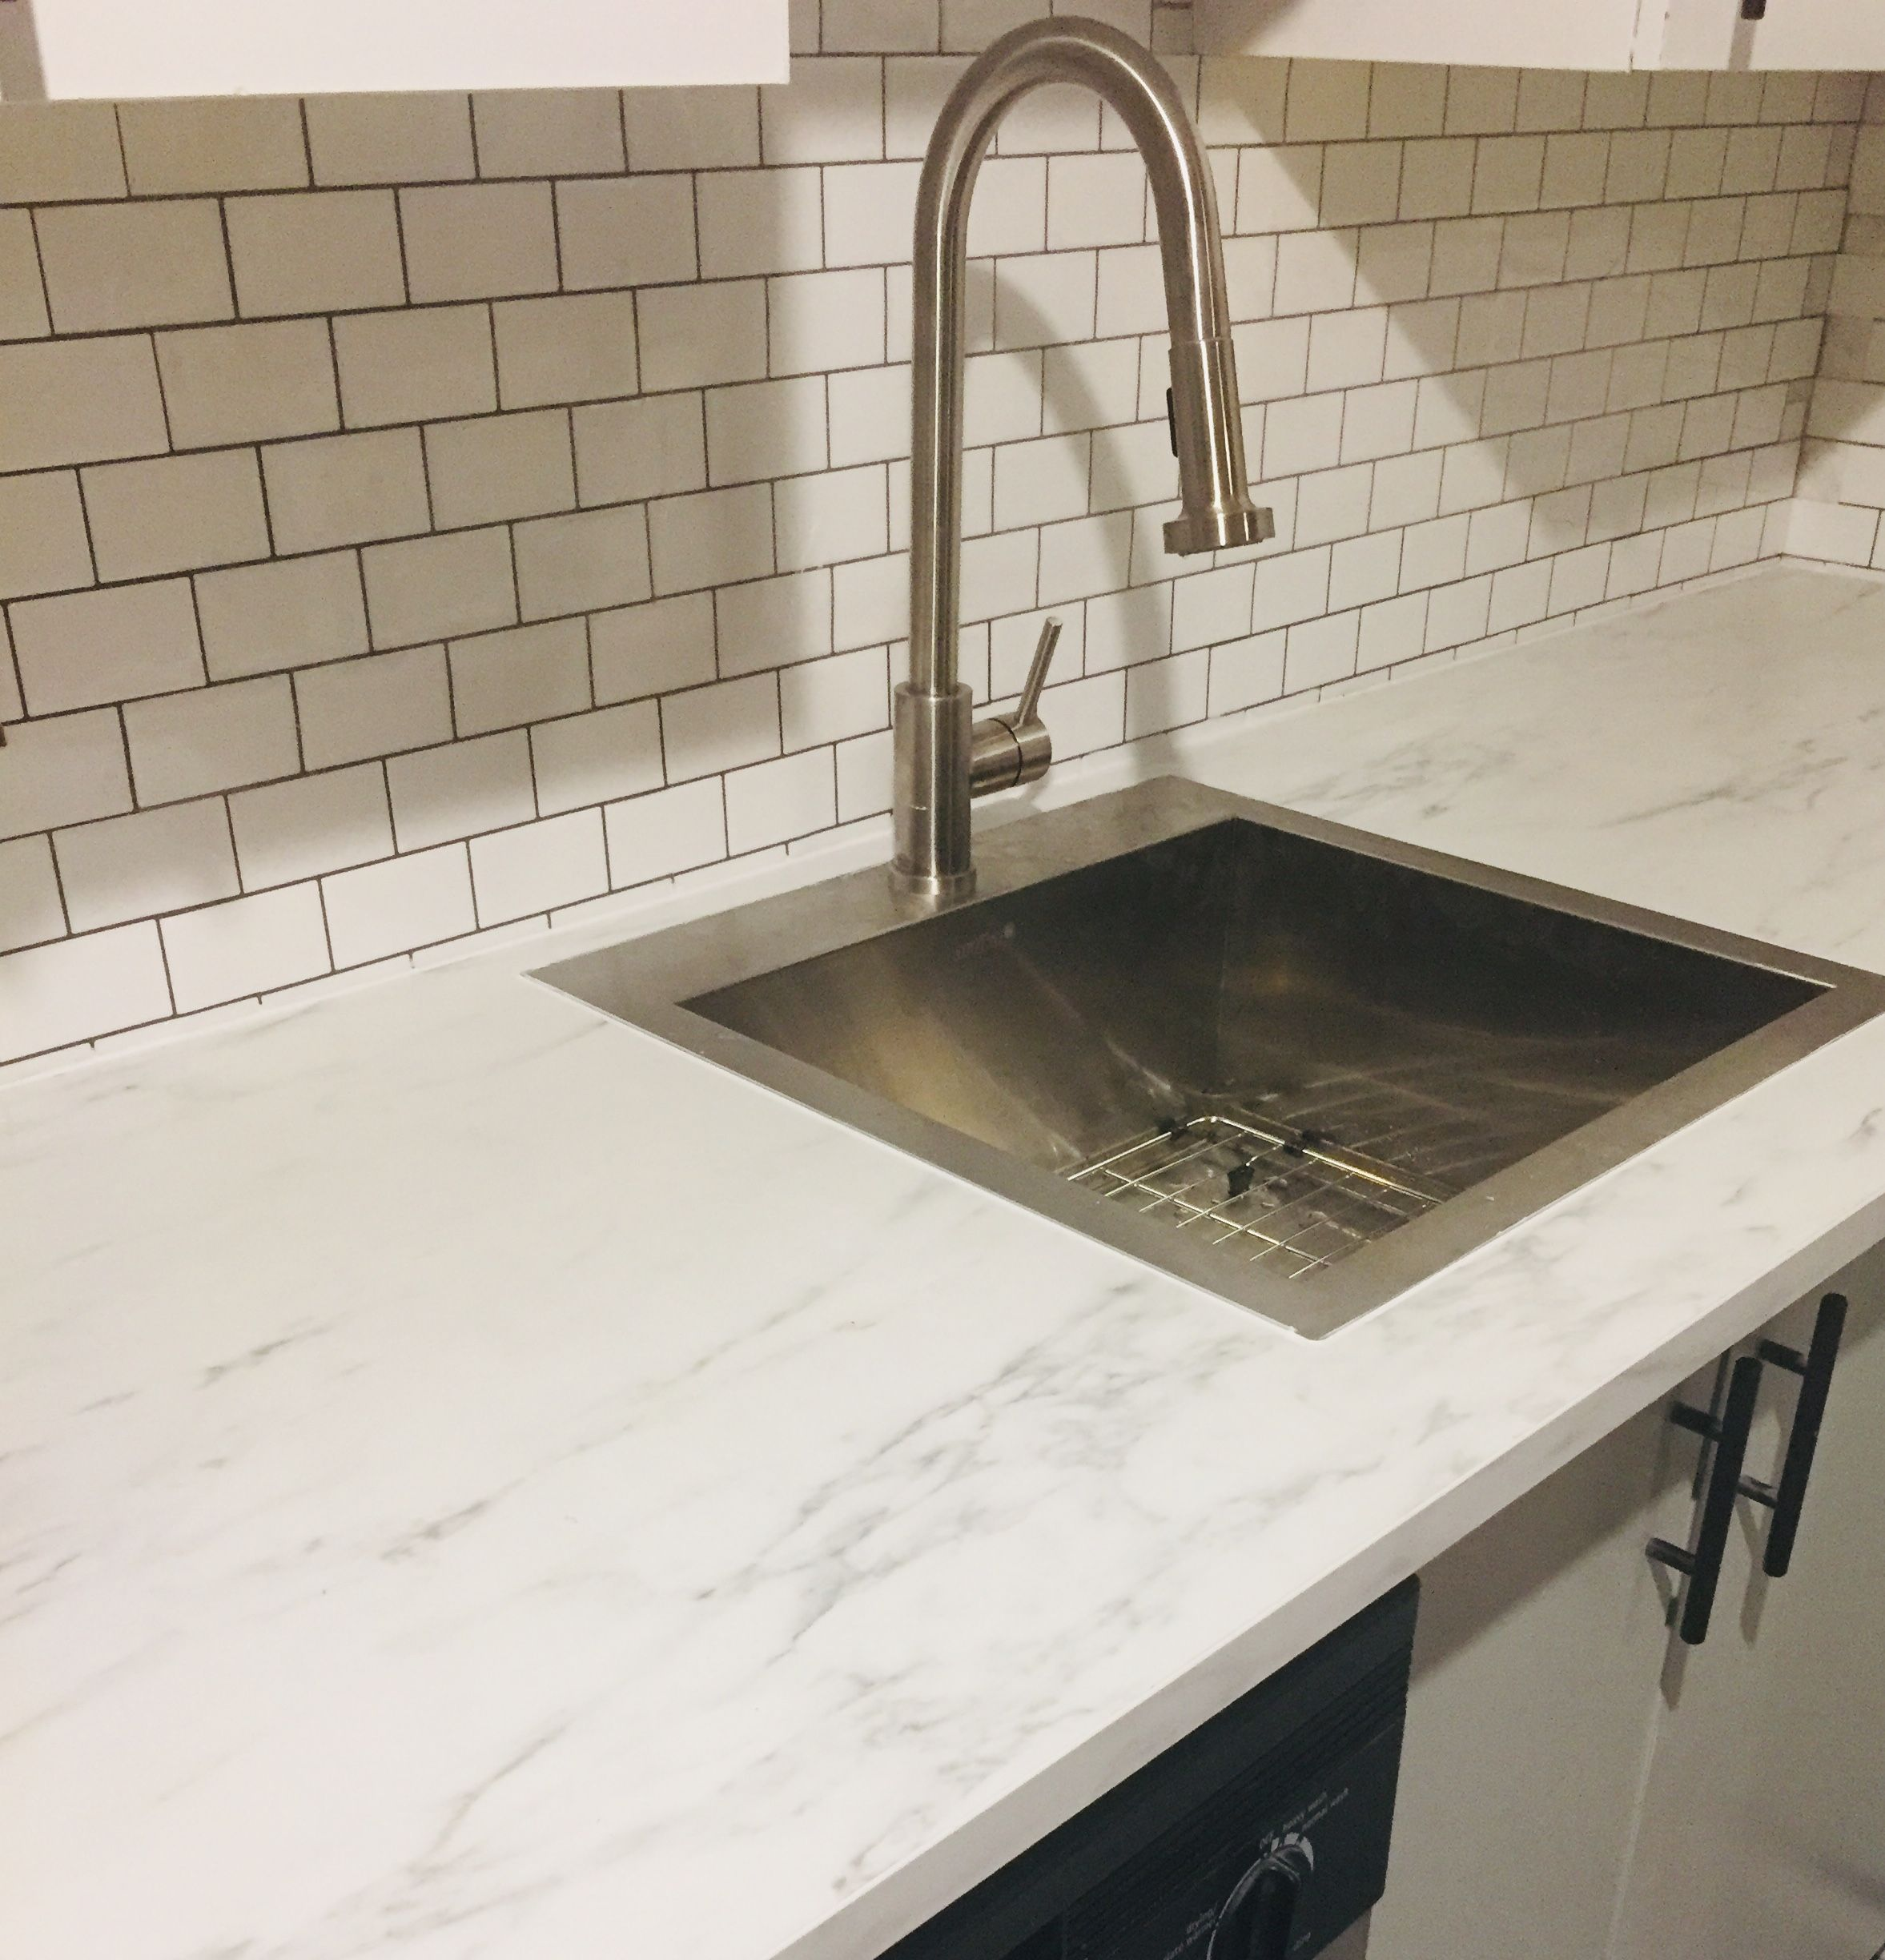 I Replaced The Old Countertop With The Ikea Ekbacken White Marble